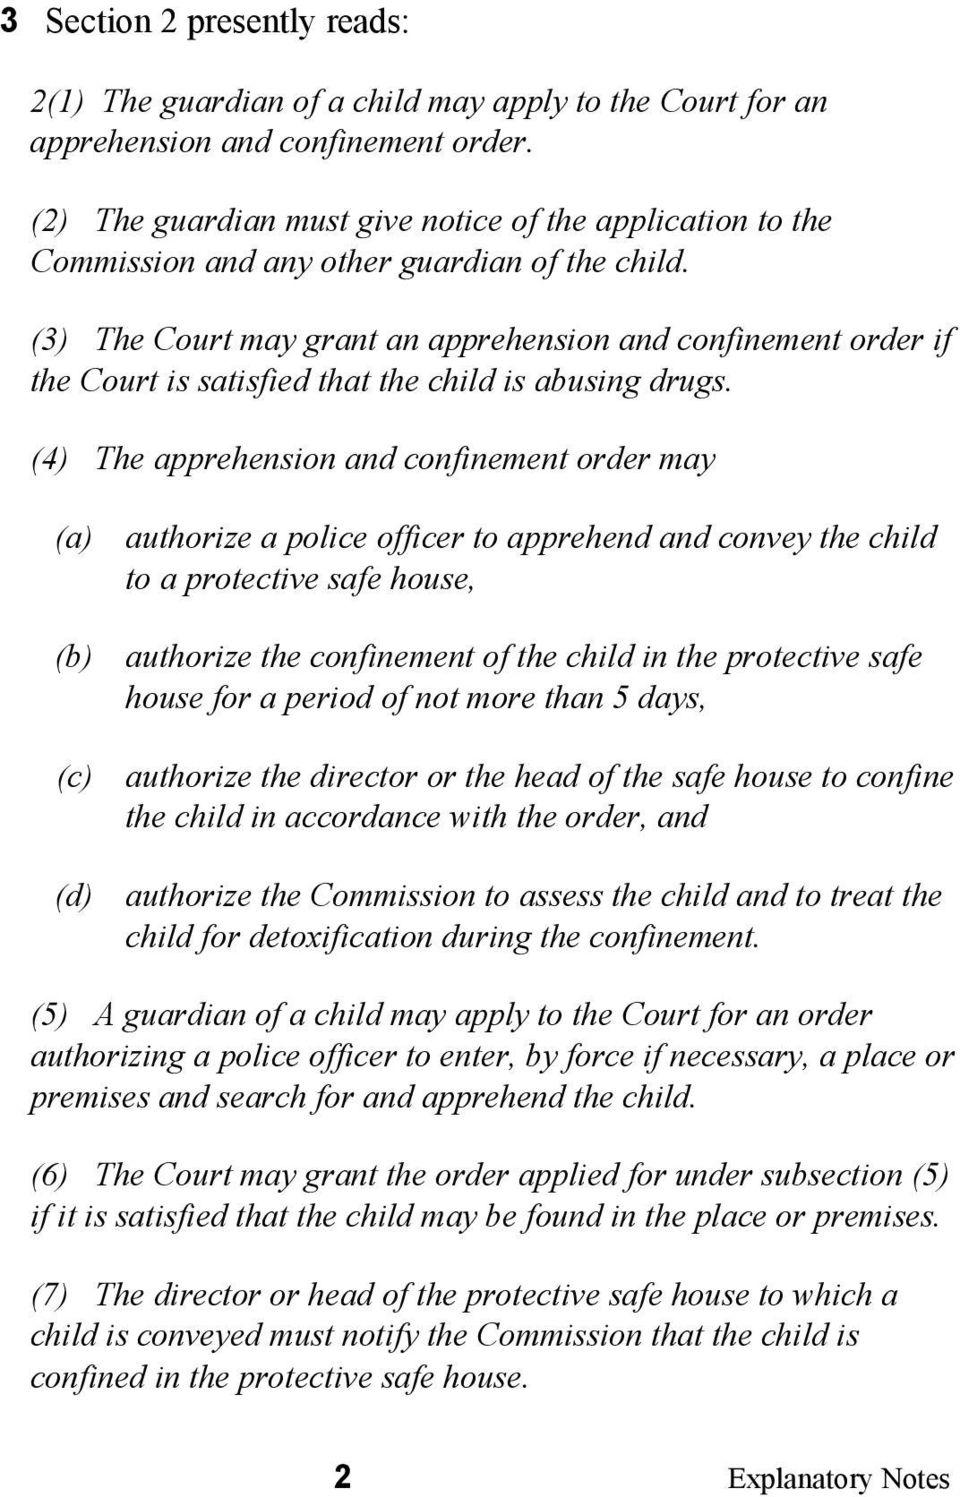 (3) The Court may grant an apprehension and confinement order if the Court is satisfied that the child is abusing drugs.